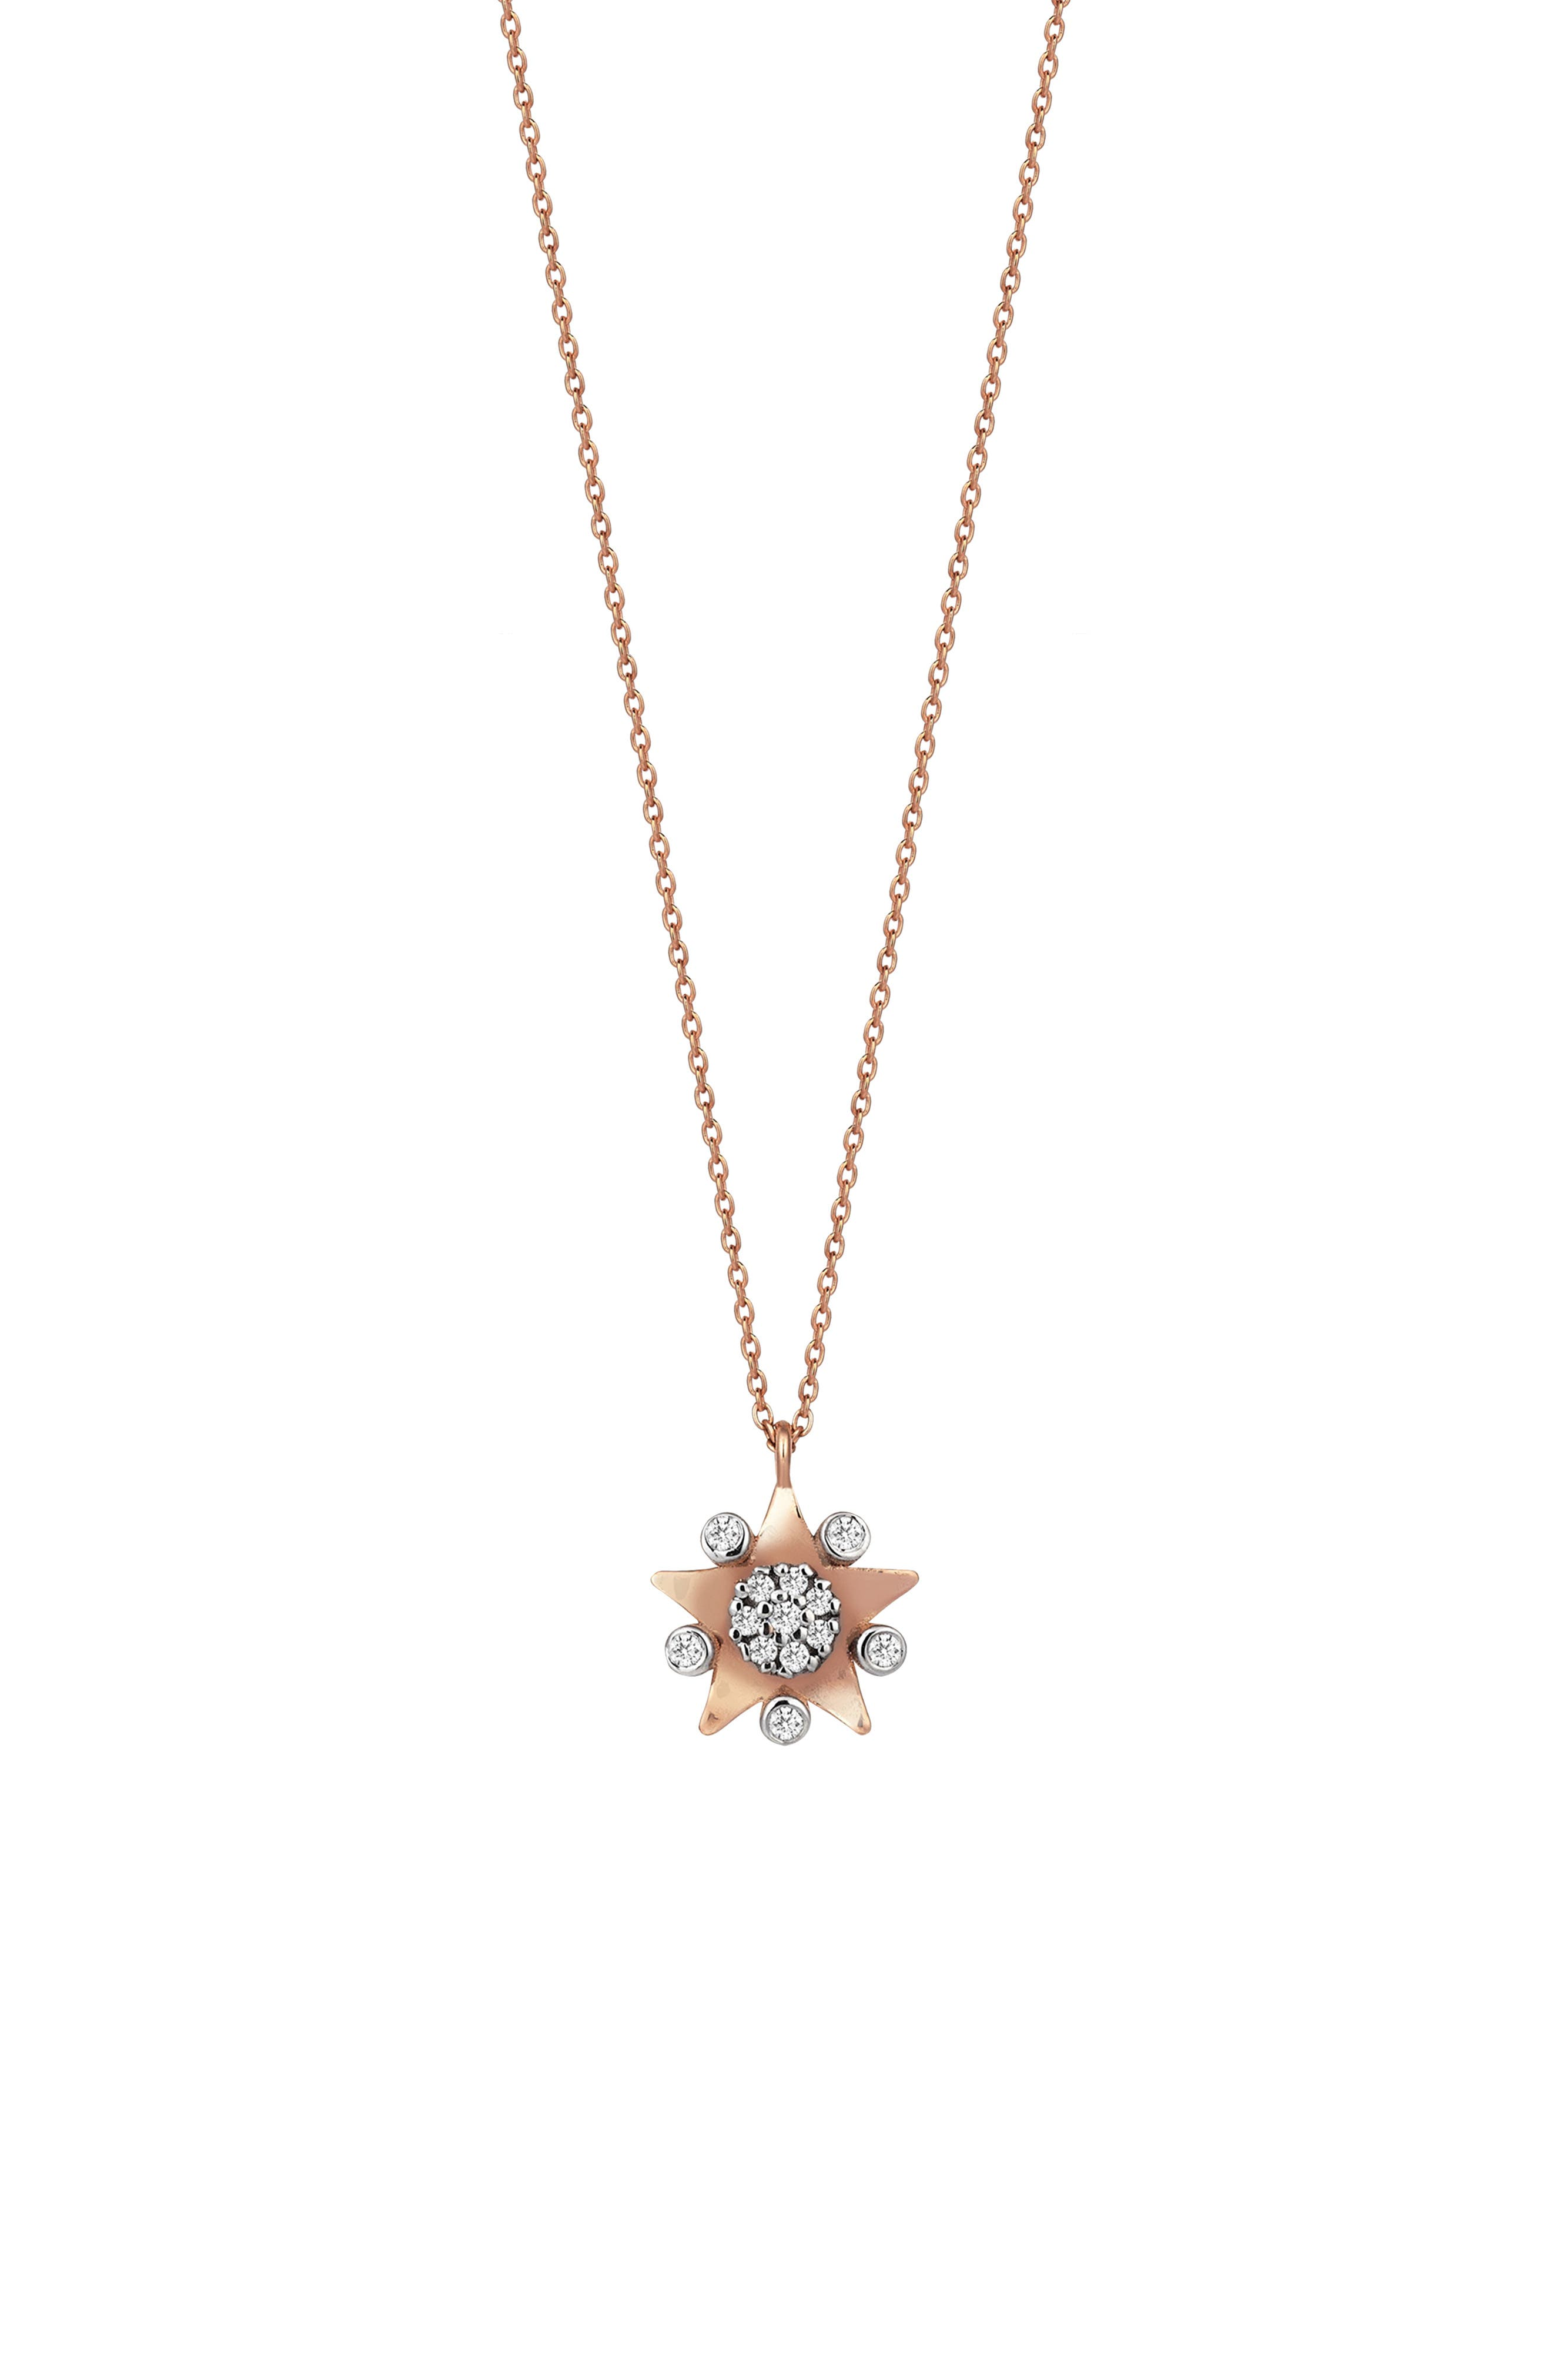 Eclectic Circle Pendant Necklace,                             Main thumbnail 1, color,                             ROSE GOLD